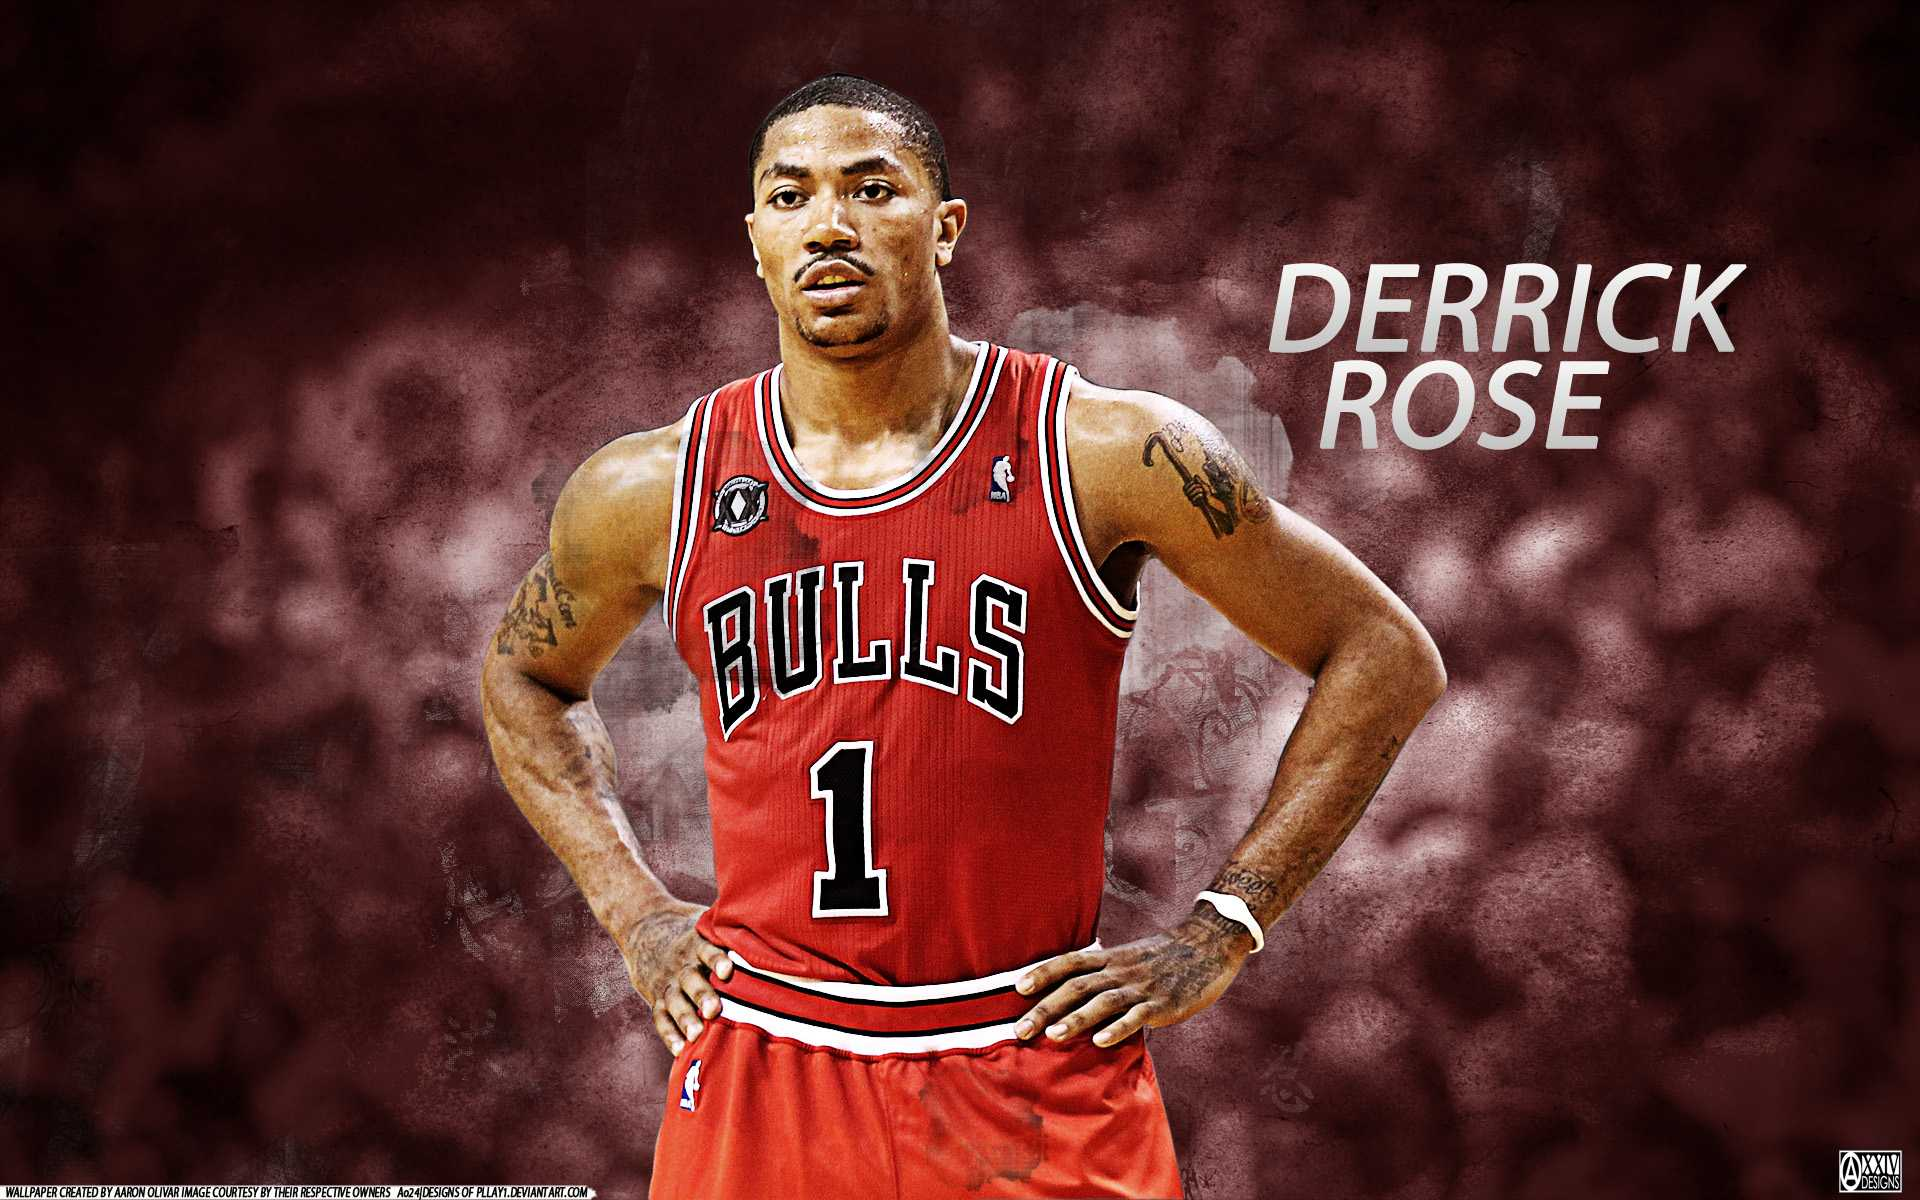 Derrick Rose Career stats game logs biographical info awards and achievements for the NBA and NCAA